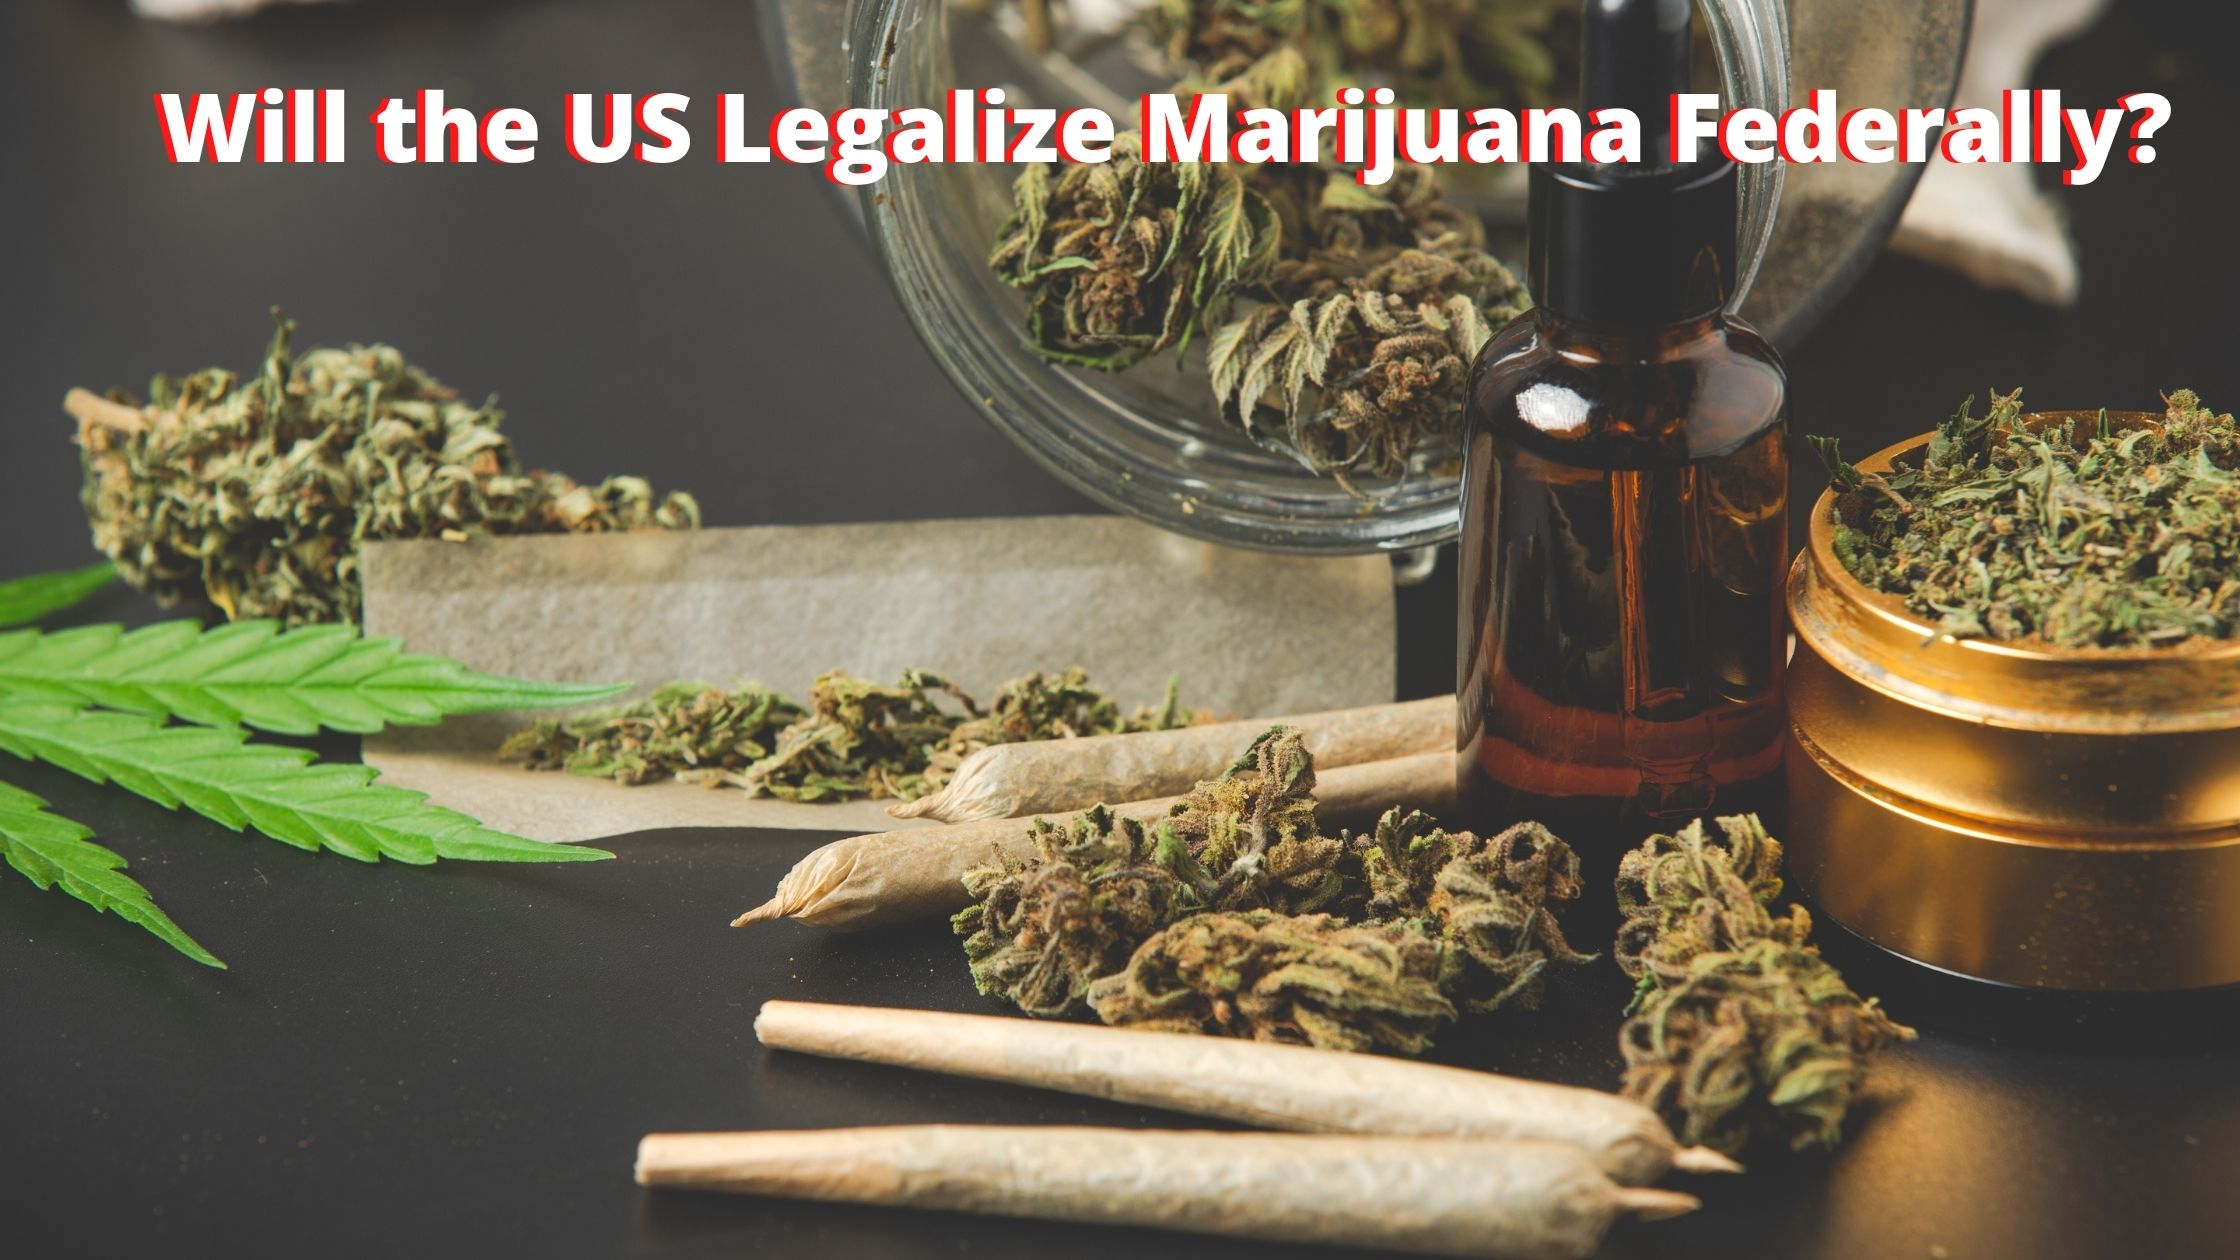 Will the US Legalize Marijuana Federally